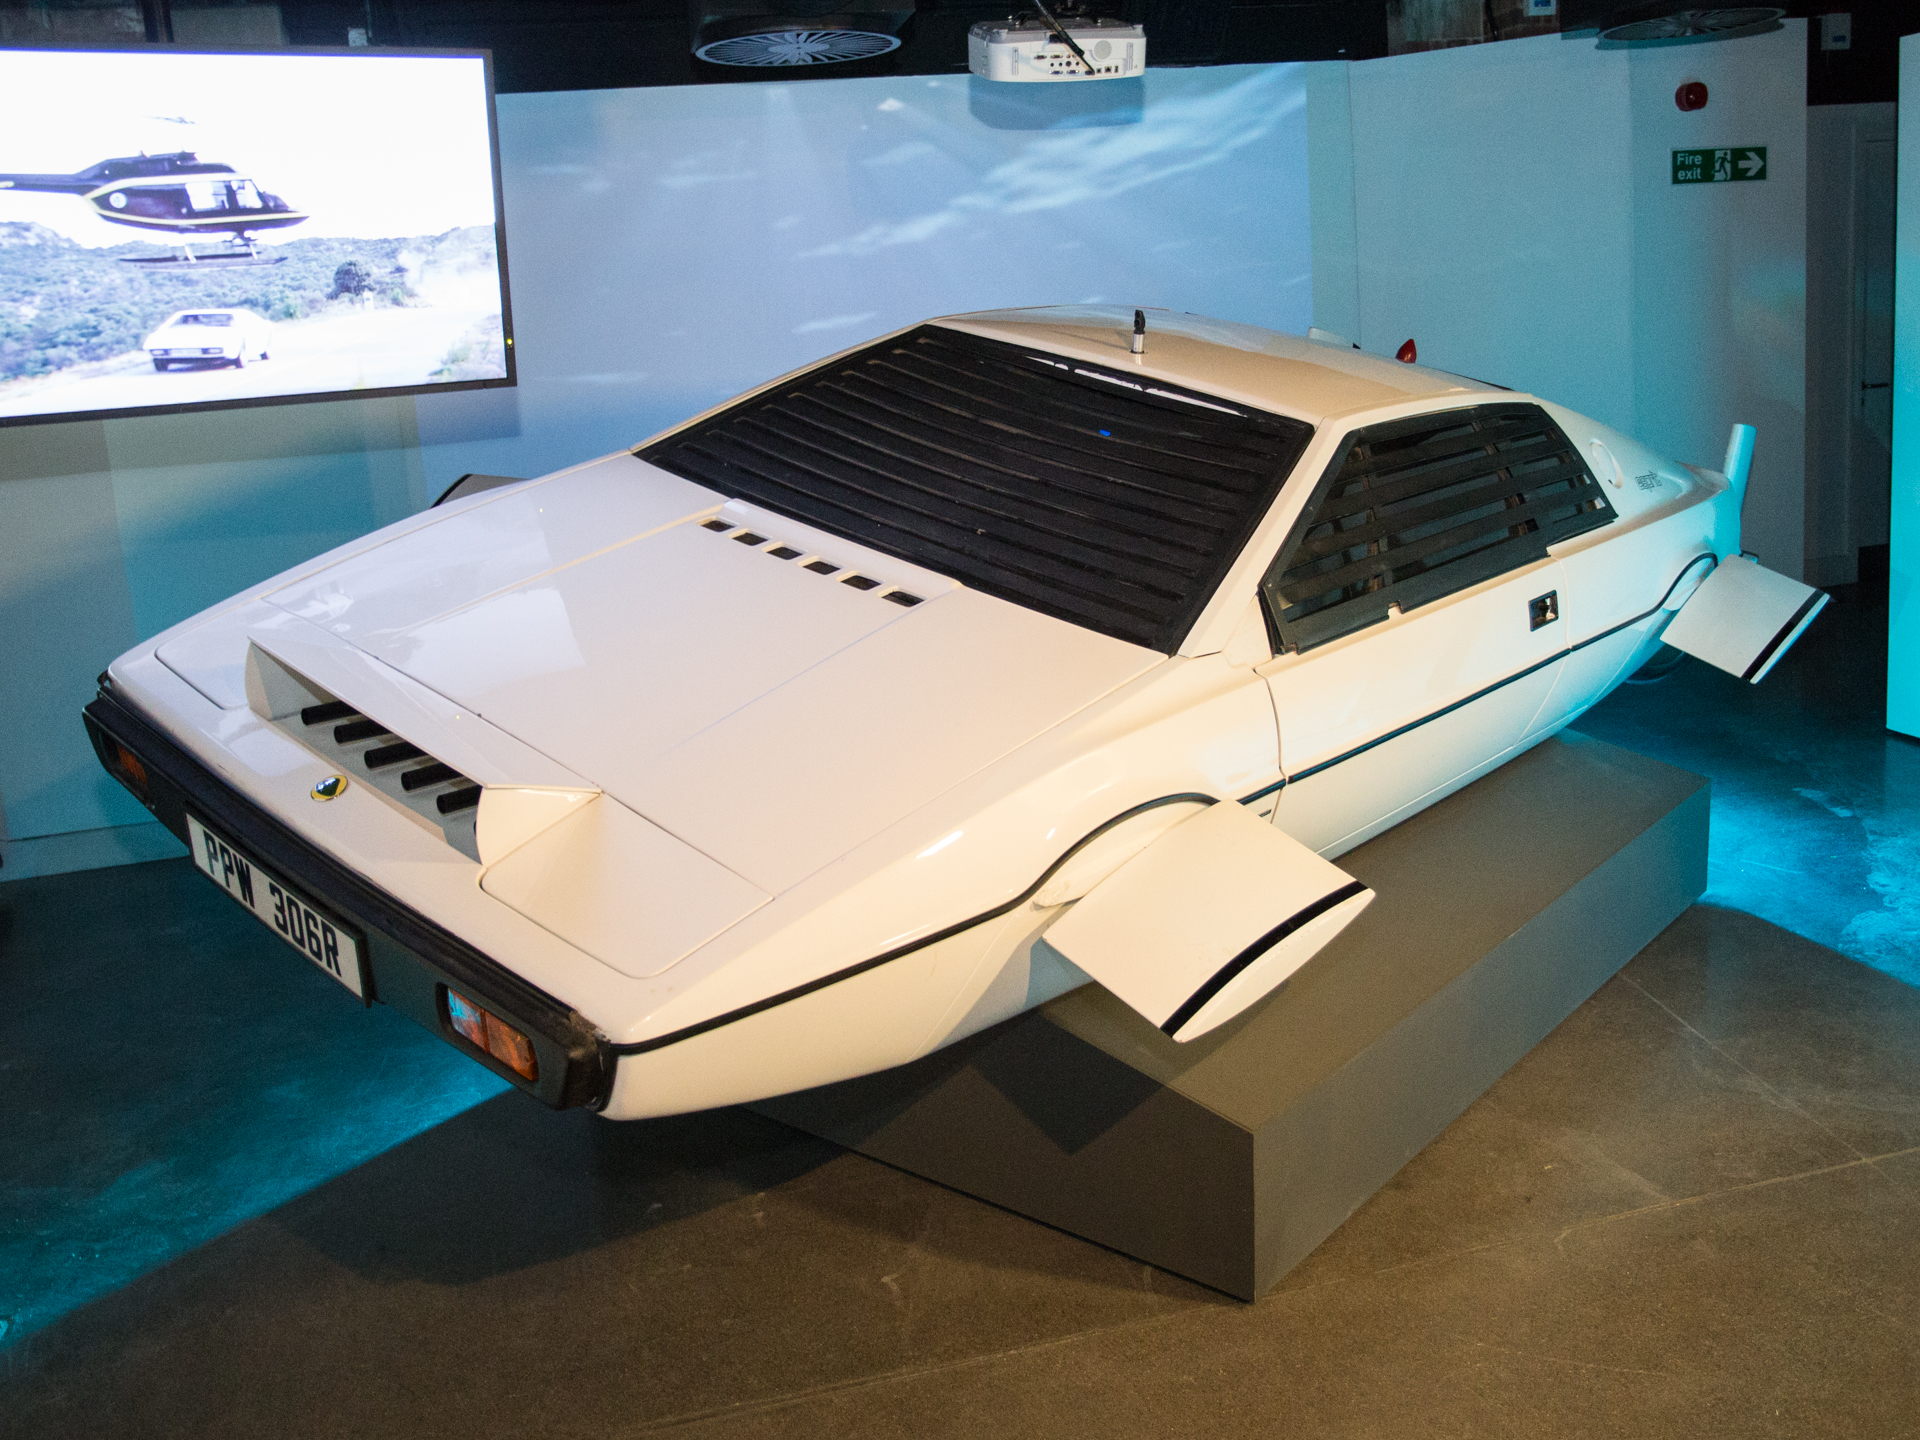 The Lotus Esprit from The Spy Who Loved Me